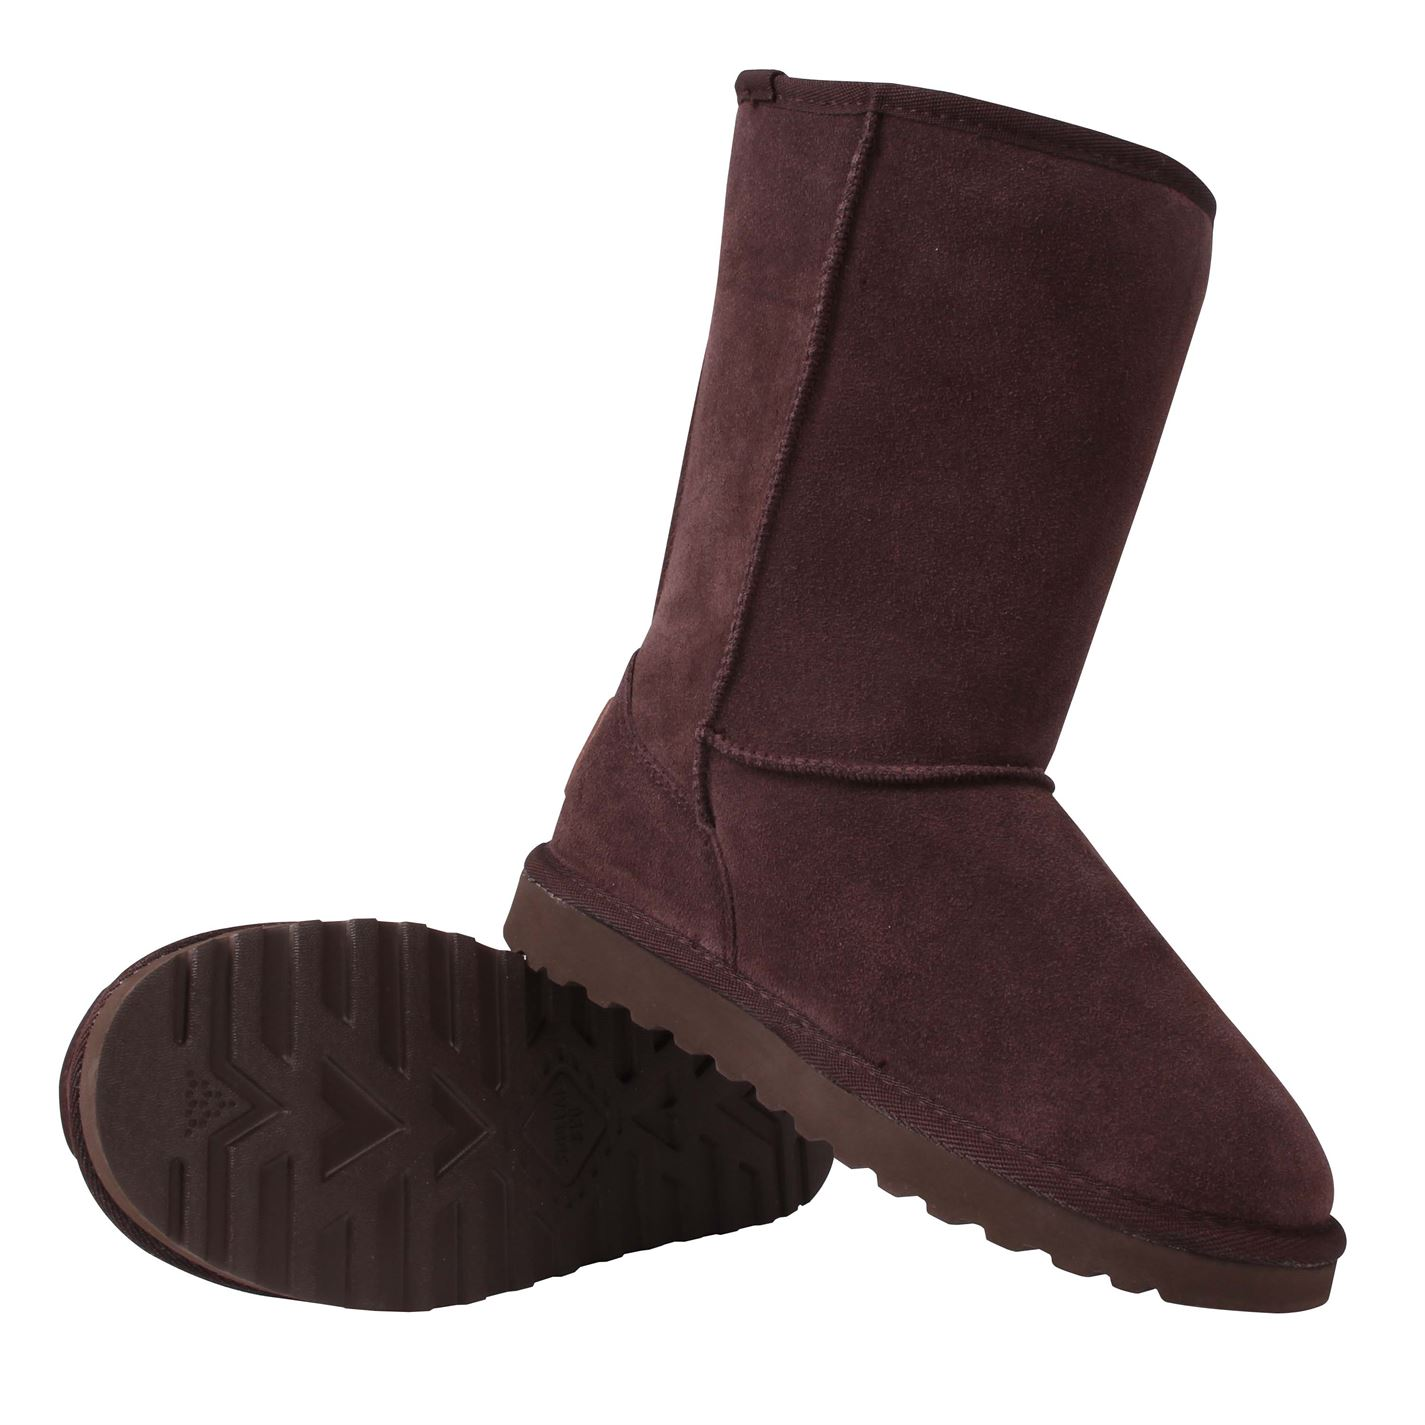 SoulCal Womens Tahoe Snug Ankle Boots Faux Fur Trim Suede Casual Winter Shoes